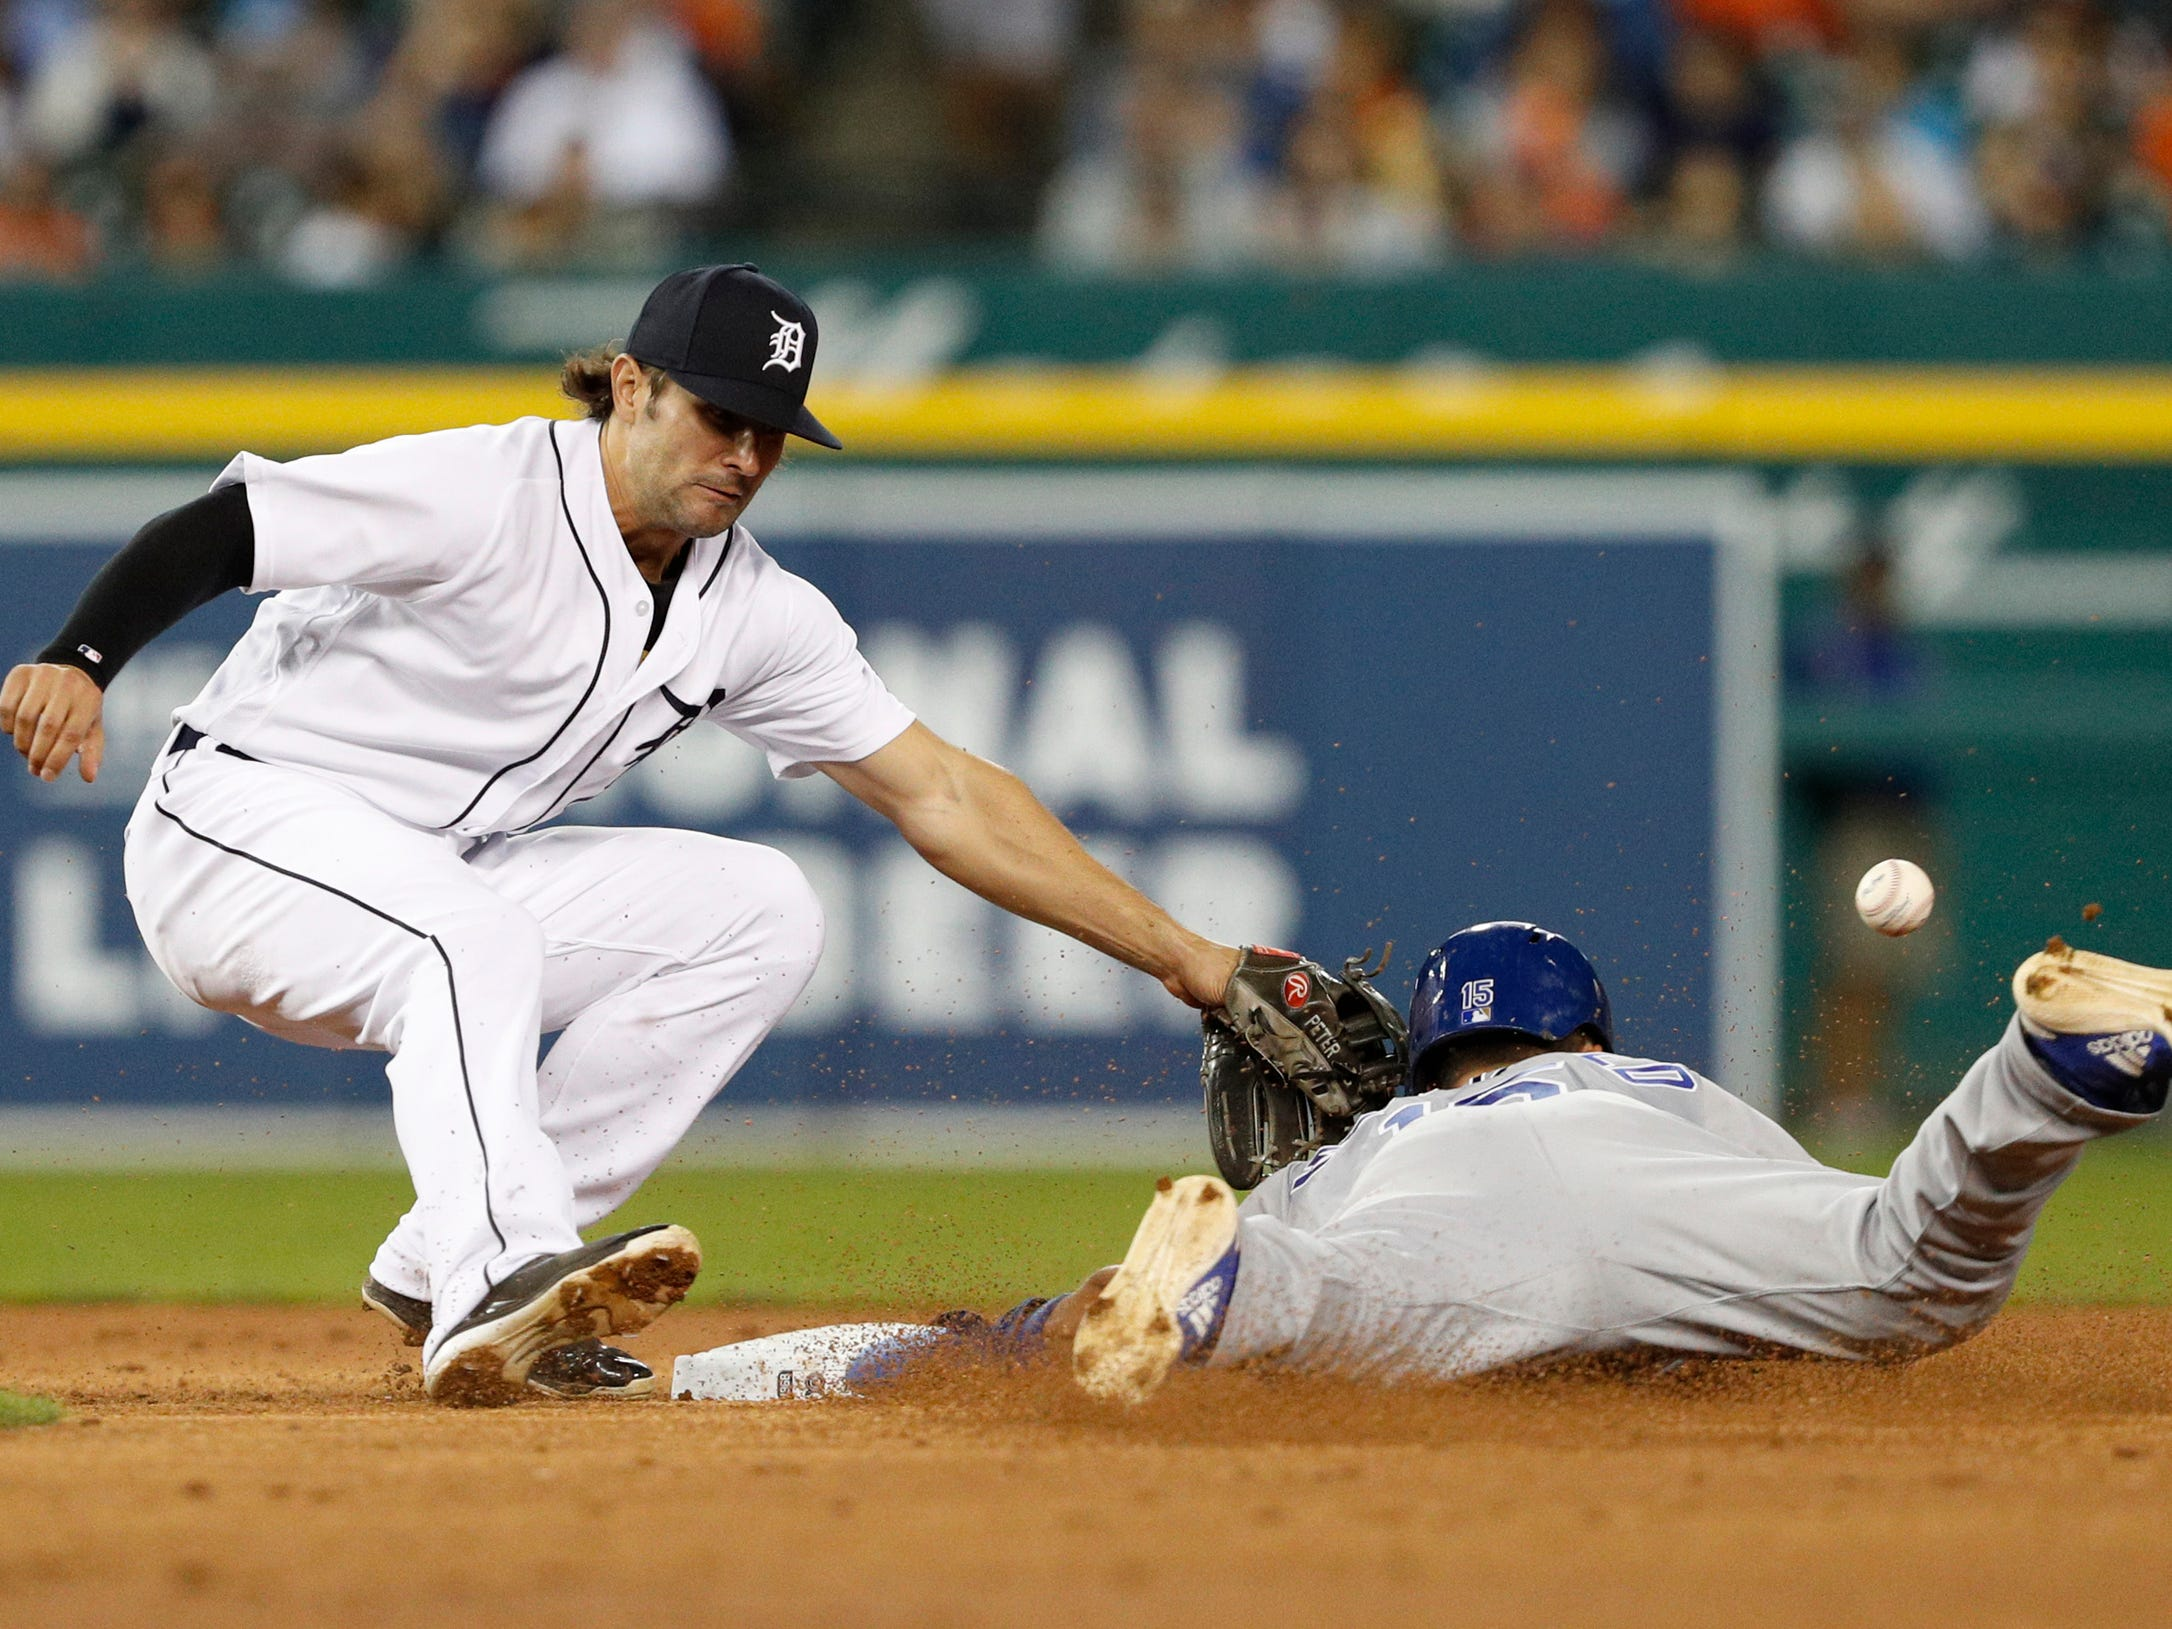 Kansas City Royals second baseman Whit Merrifield slides safe into second base against Detroit Tigers shortstop Pete Kozma during the third inning at Comerica Park on Sept. 21, 2018.